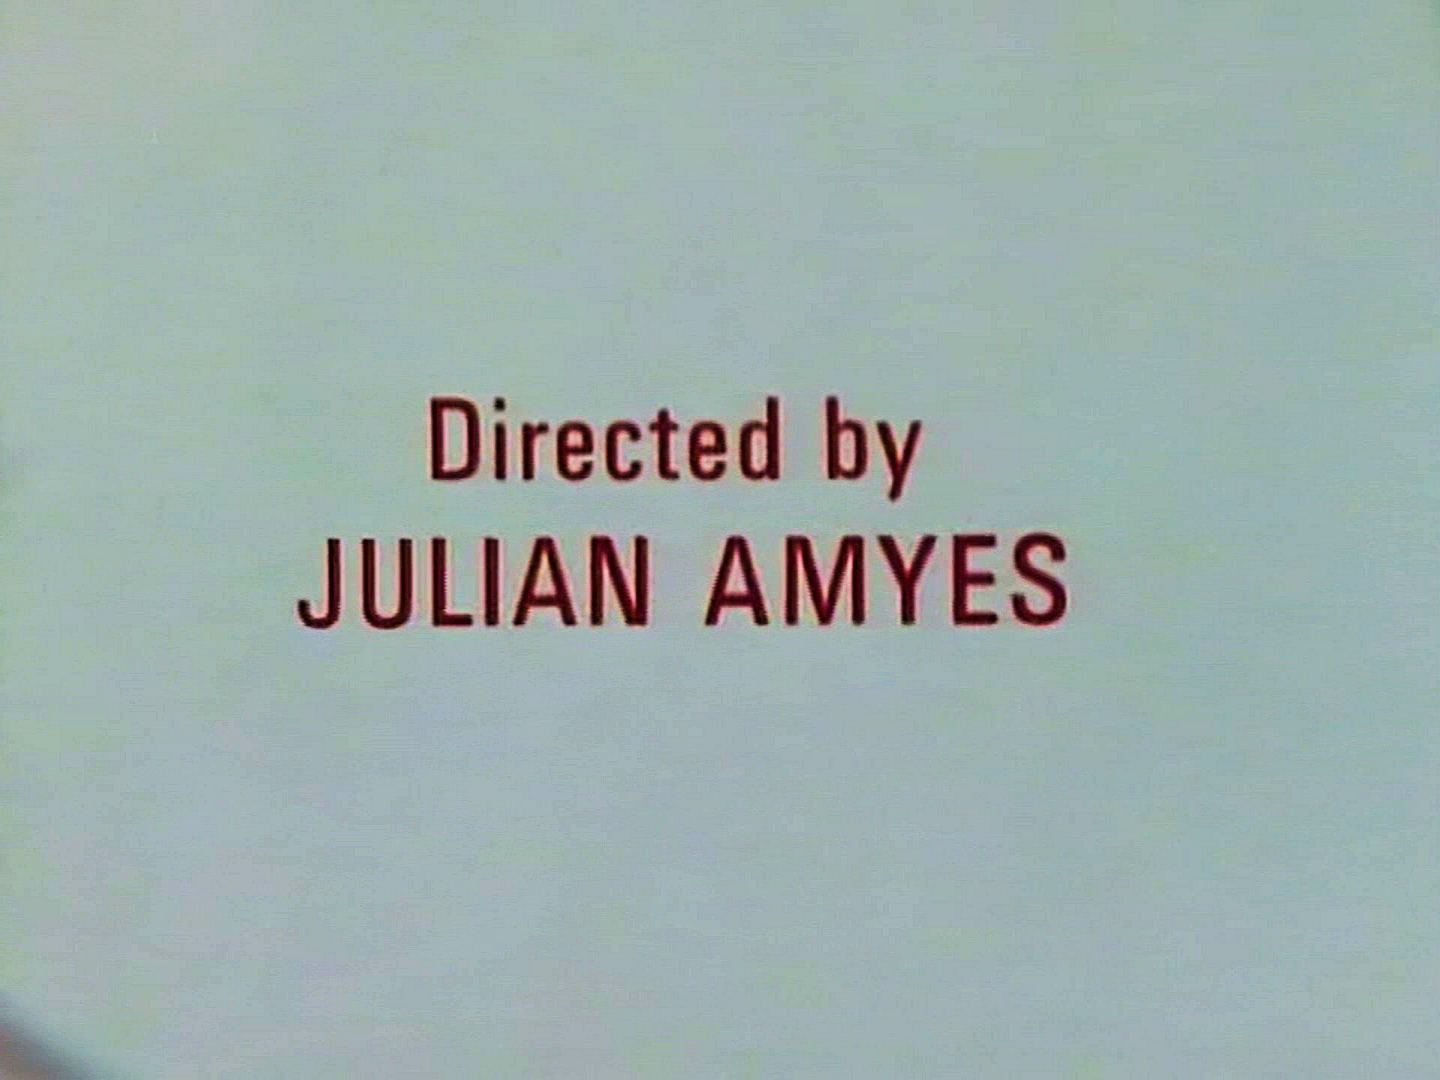 Main title from the 1986 'The Murder at the Vicarage' episode of Agatha Christie's Miss Marple (1984-1992) (3). Directed by Julian Amyes